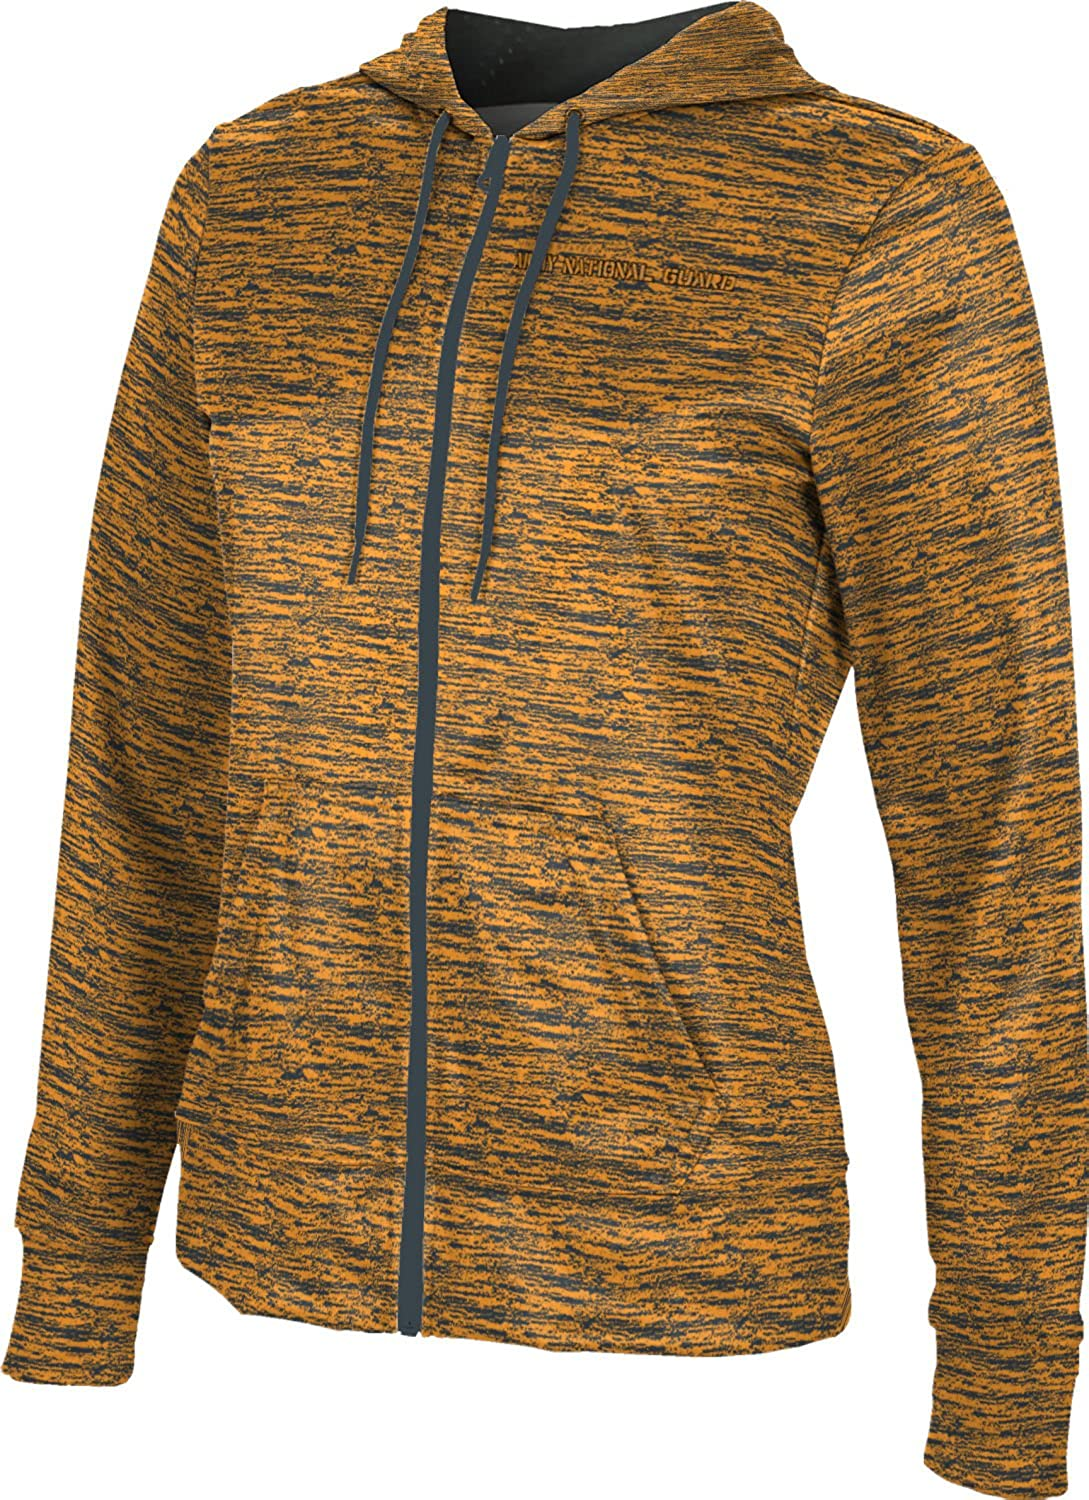 ProSphere Women's Army National Guard Military Brushed Fullzip Hoodie